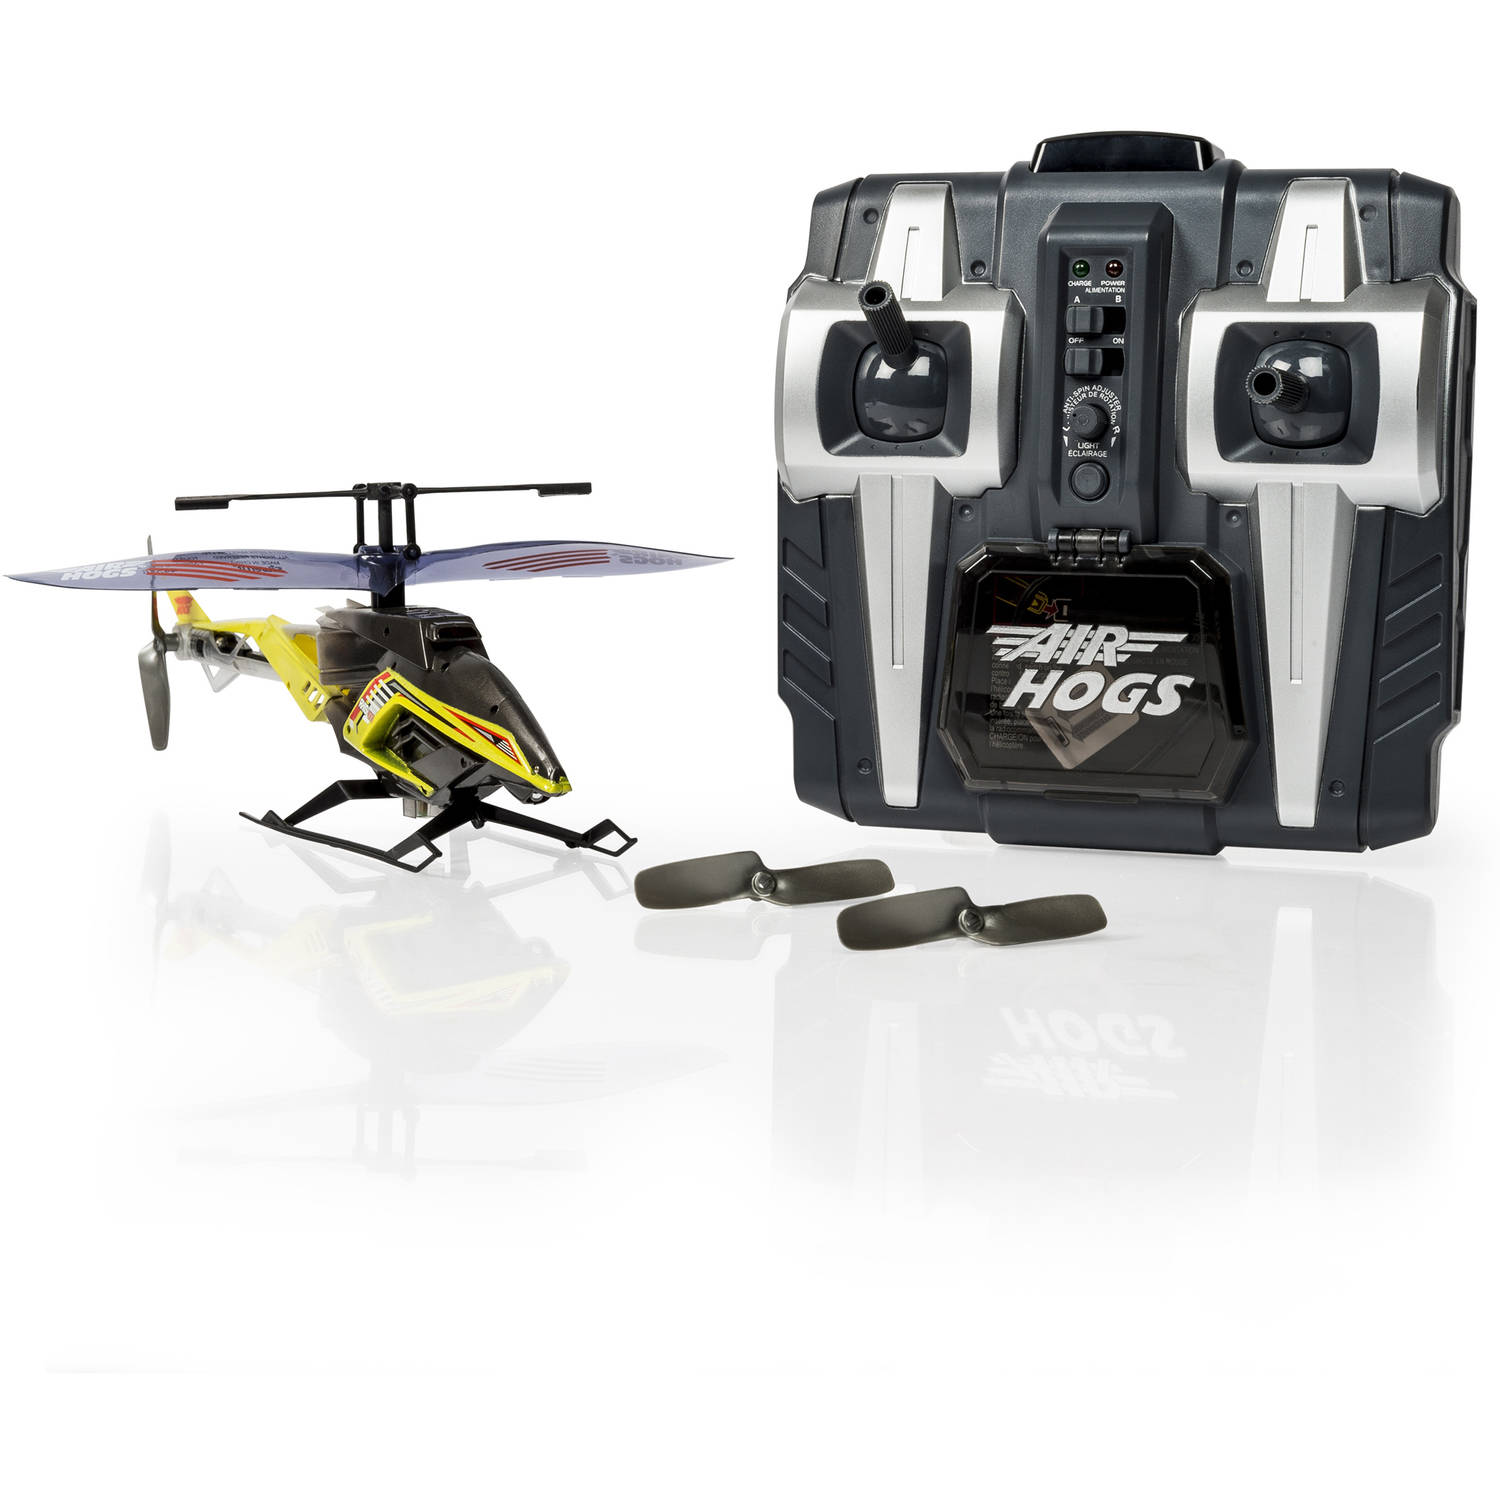 Air Hogs RC Axis 400x R/C Helicopter, Yellow